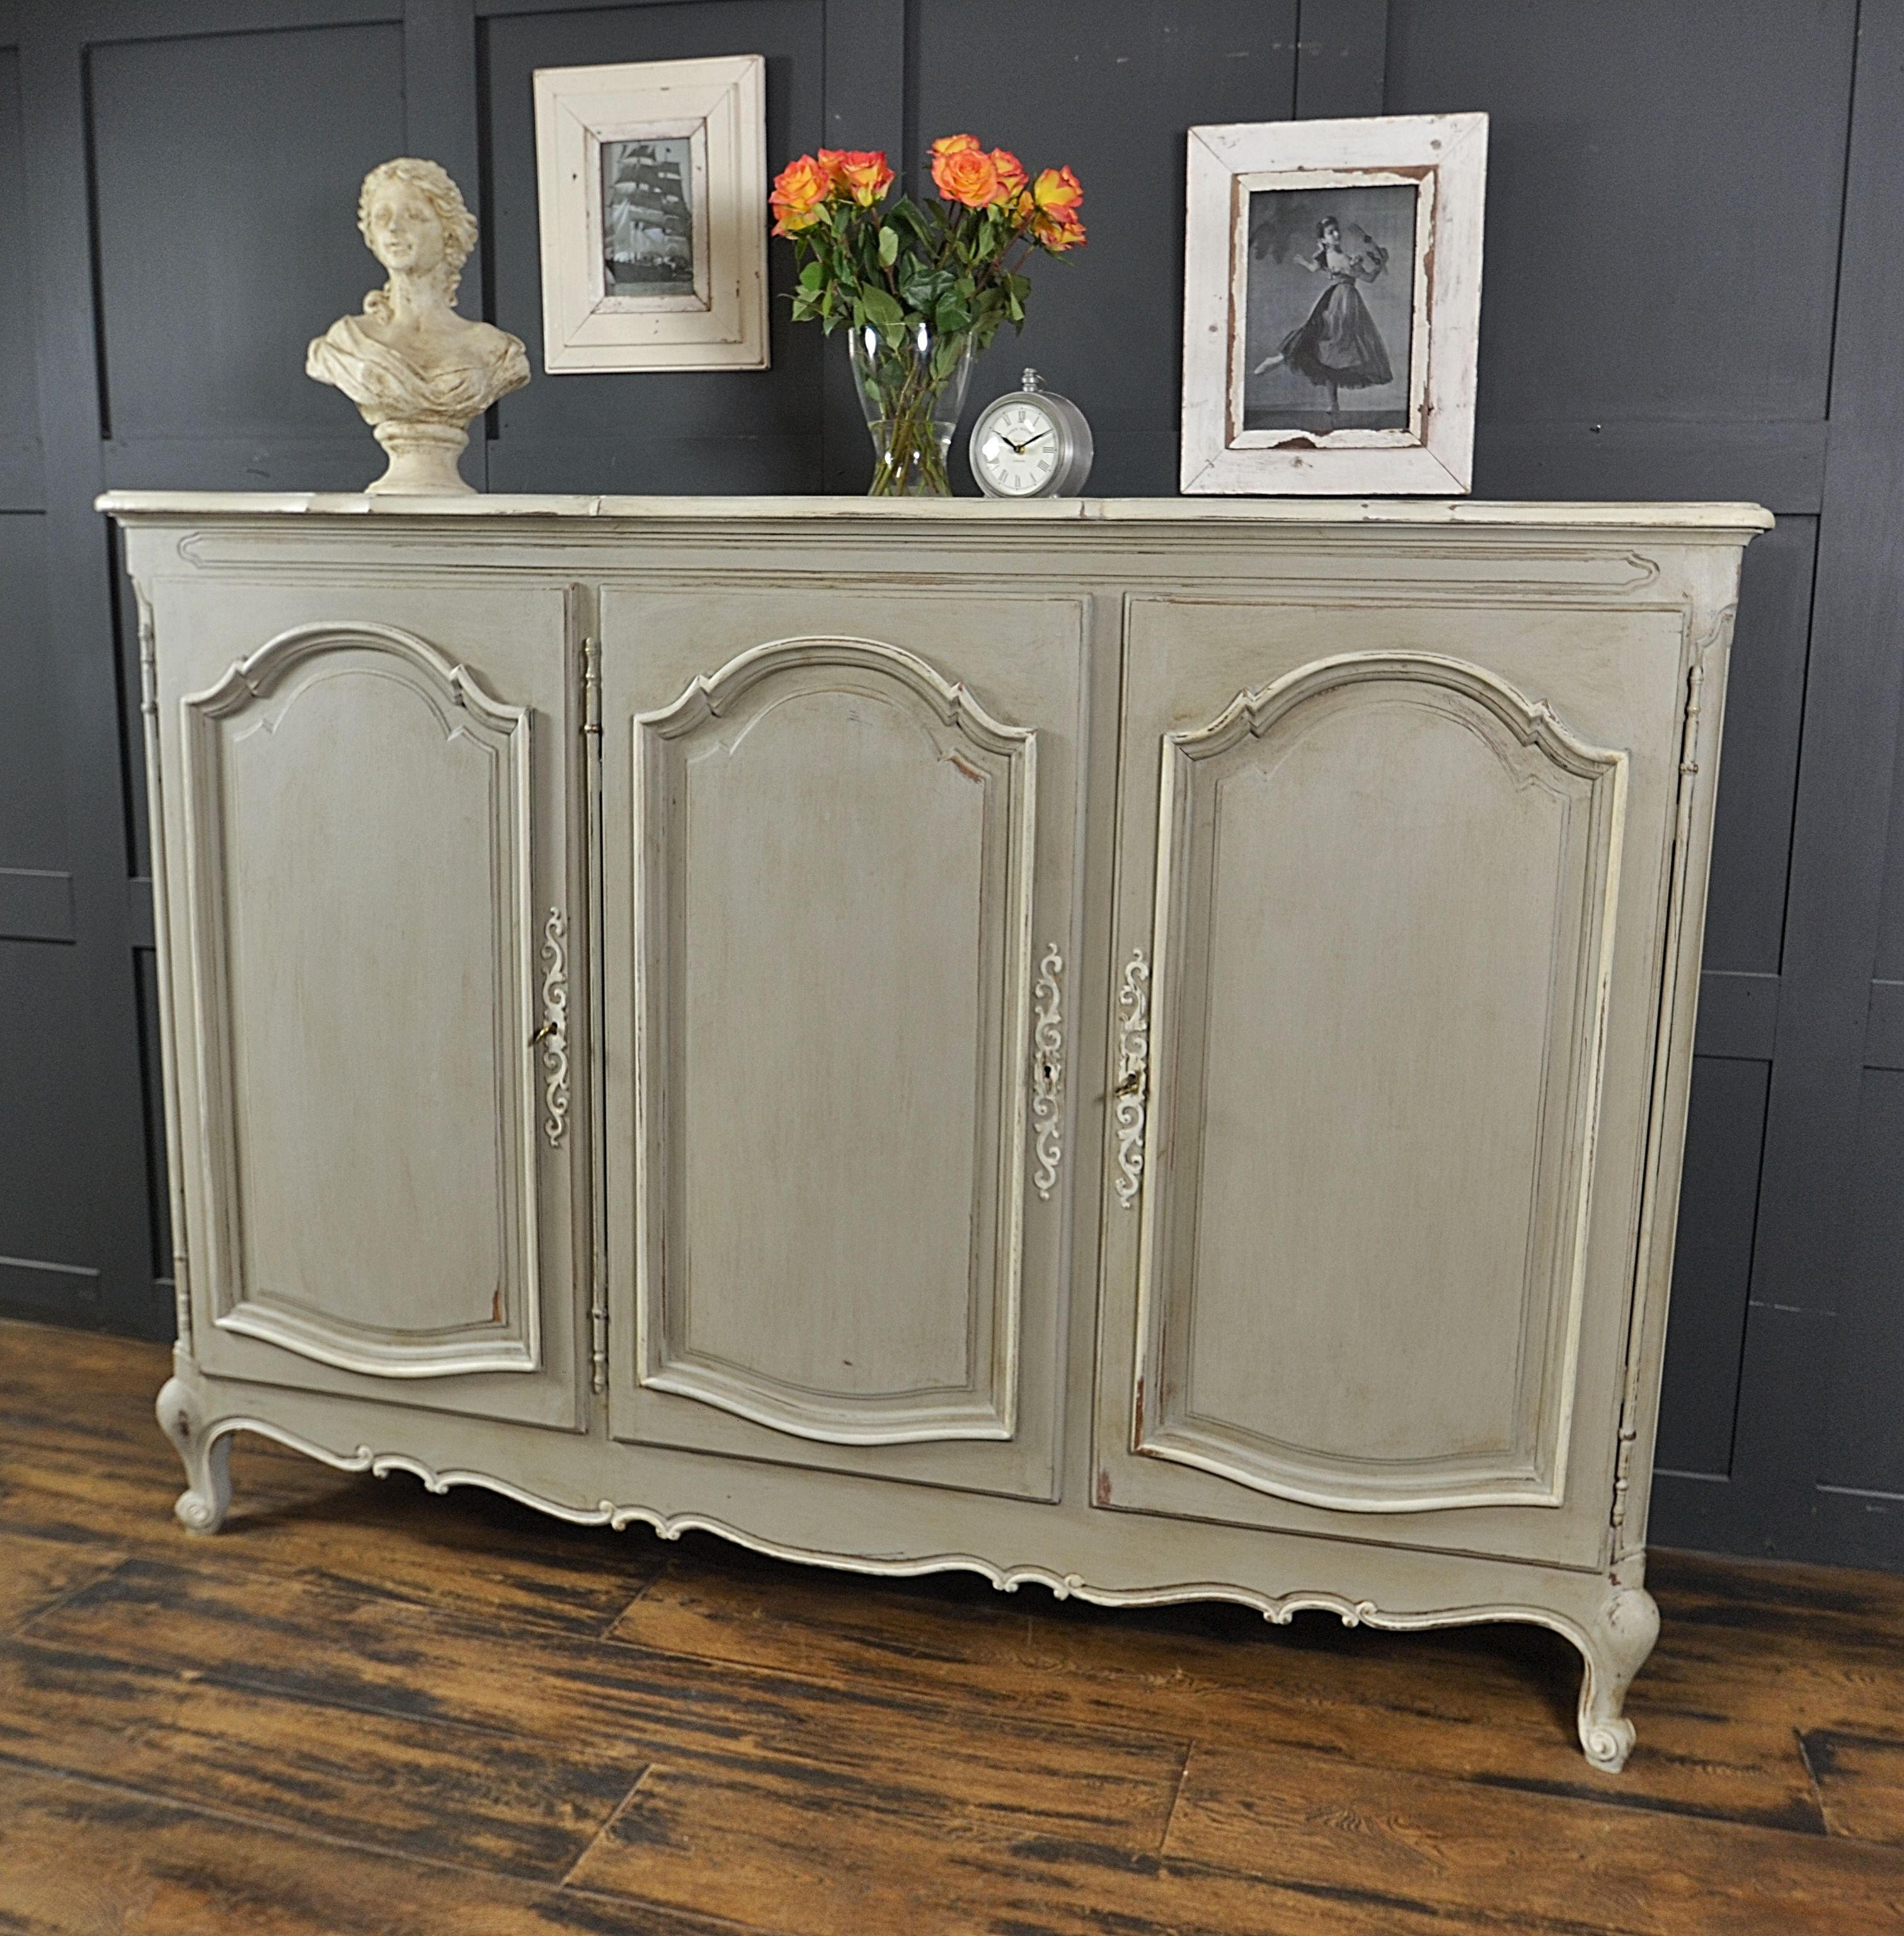 we 39 ve painted this stunning oak sideboard from france in annie sloan paris grey with farrow. Black Bedroom Furniture Sets. Home Design Ideas